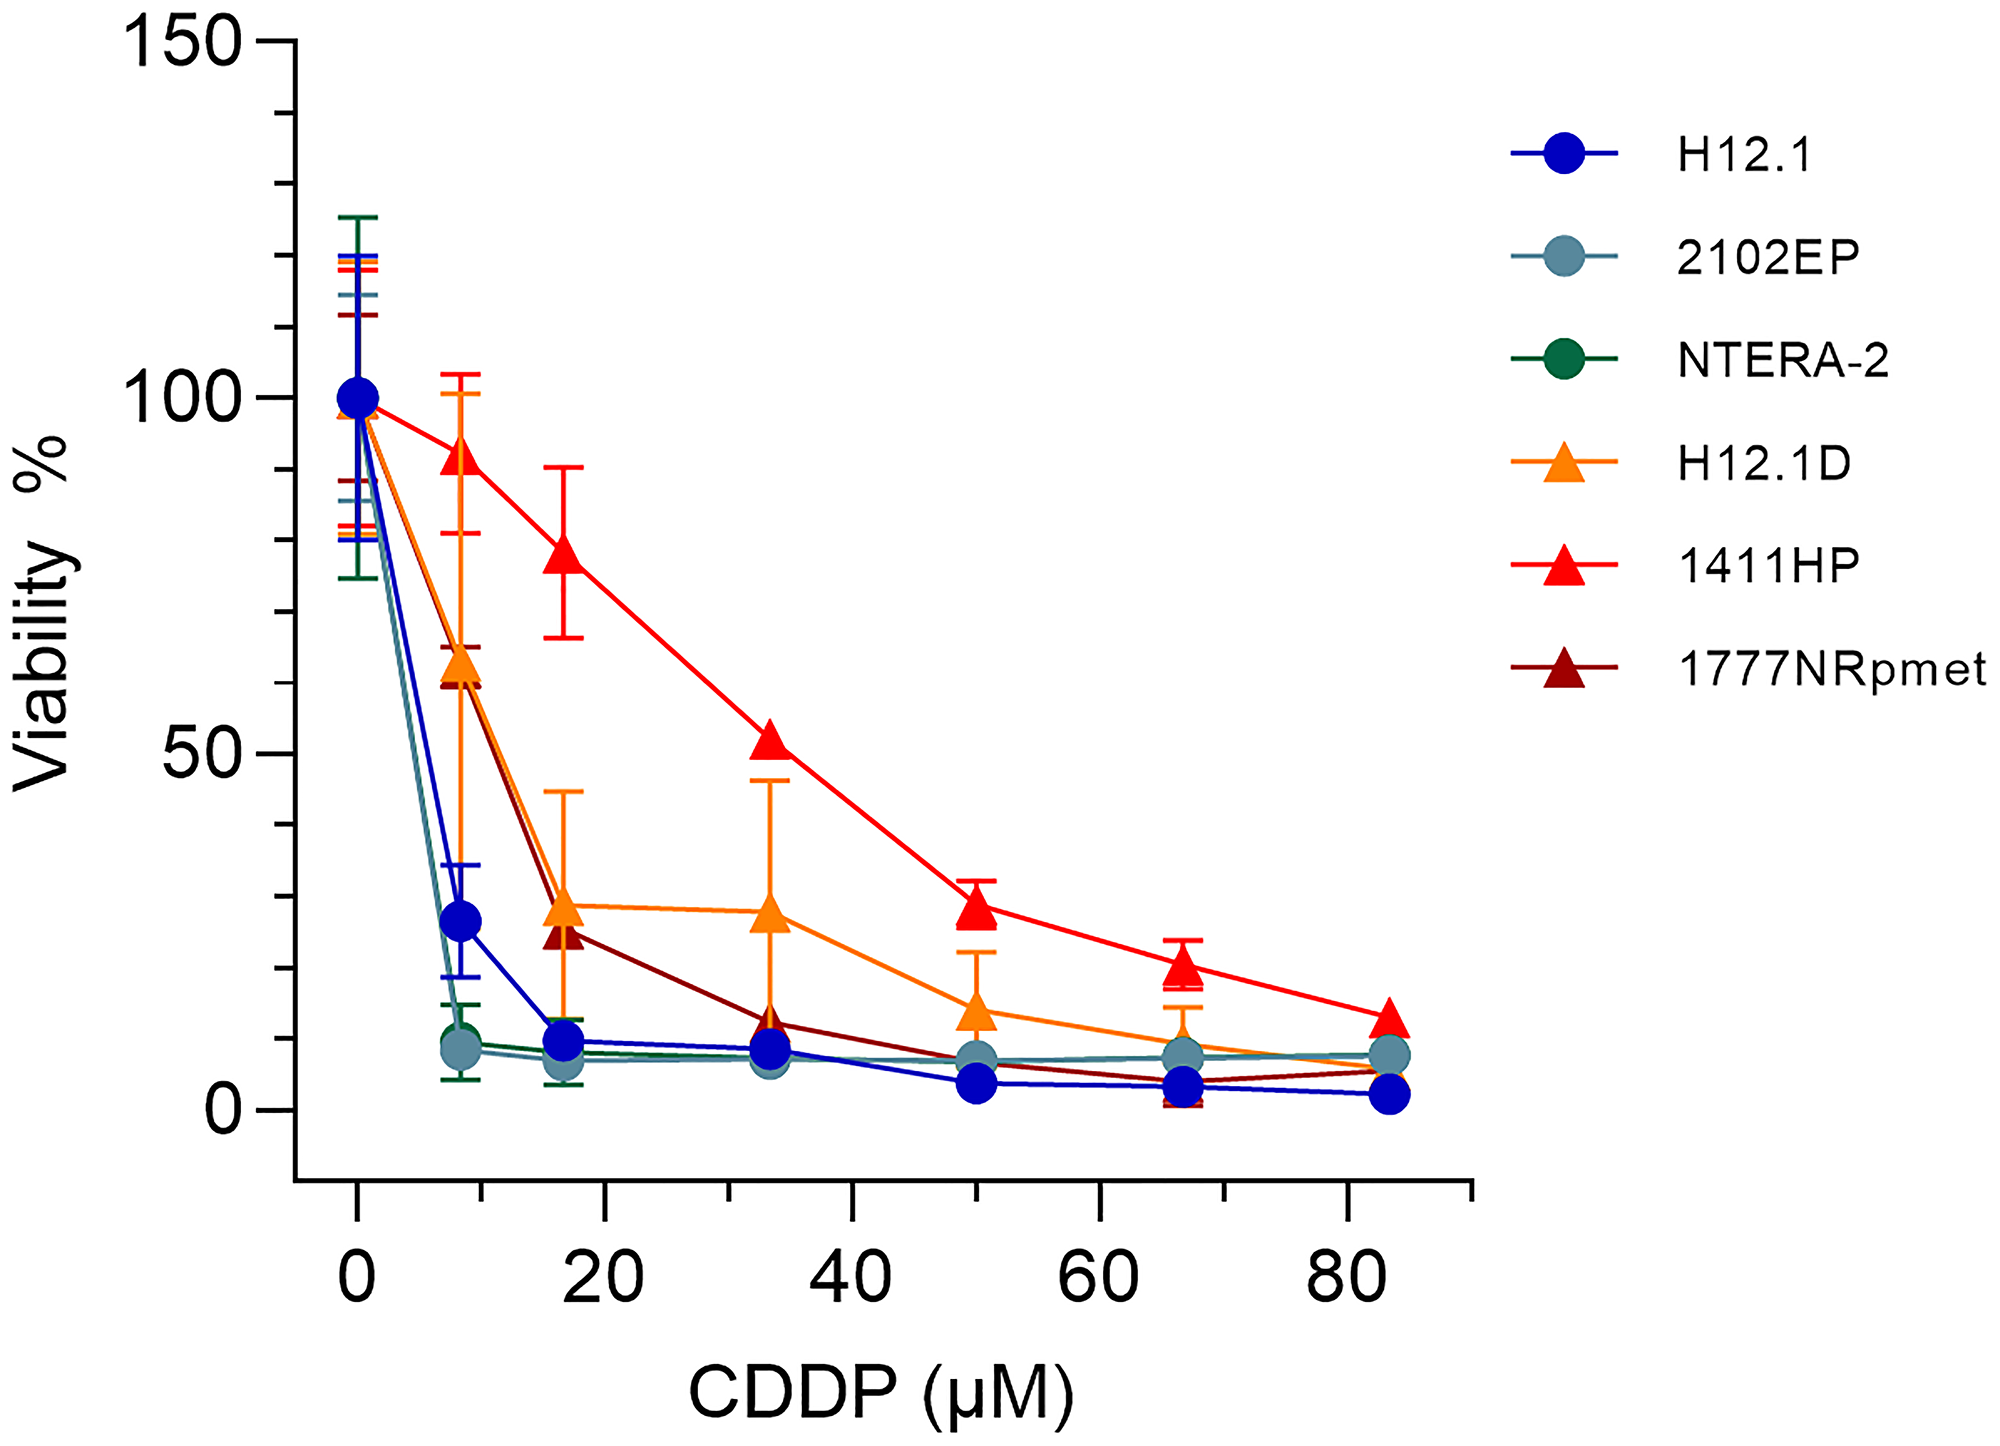 Survival of TGCT cell lines used in this study after CDDP treatment.